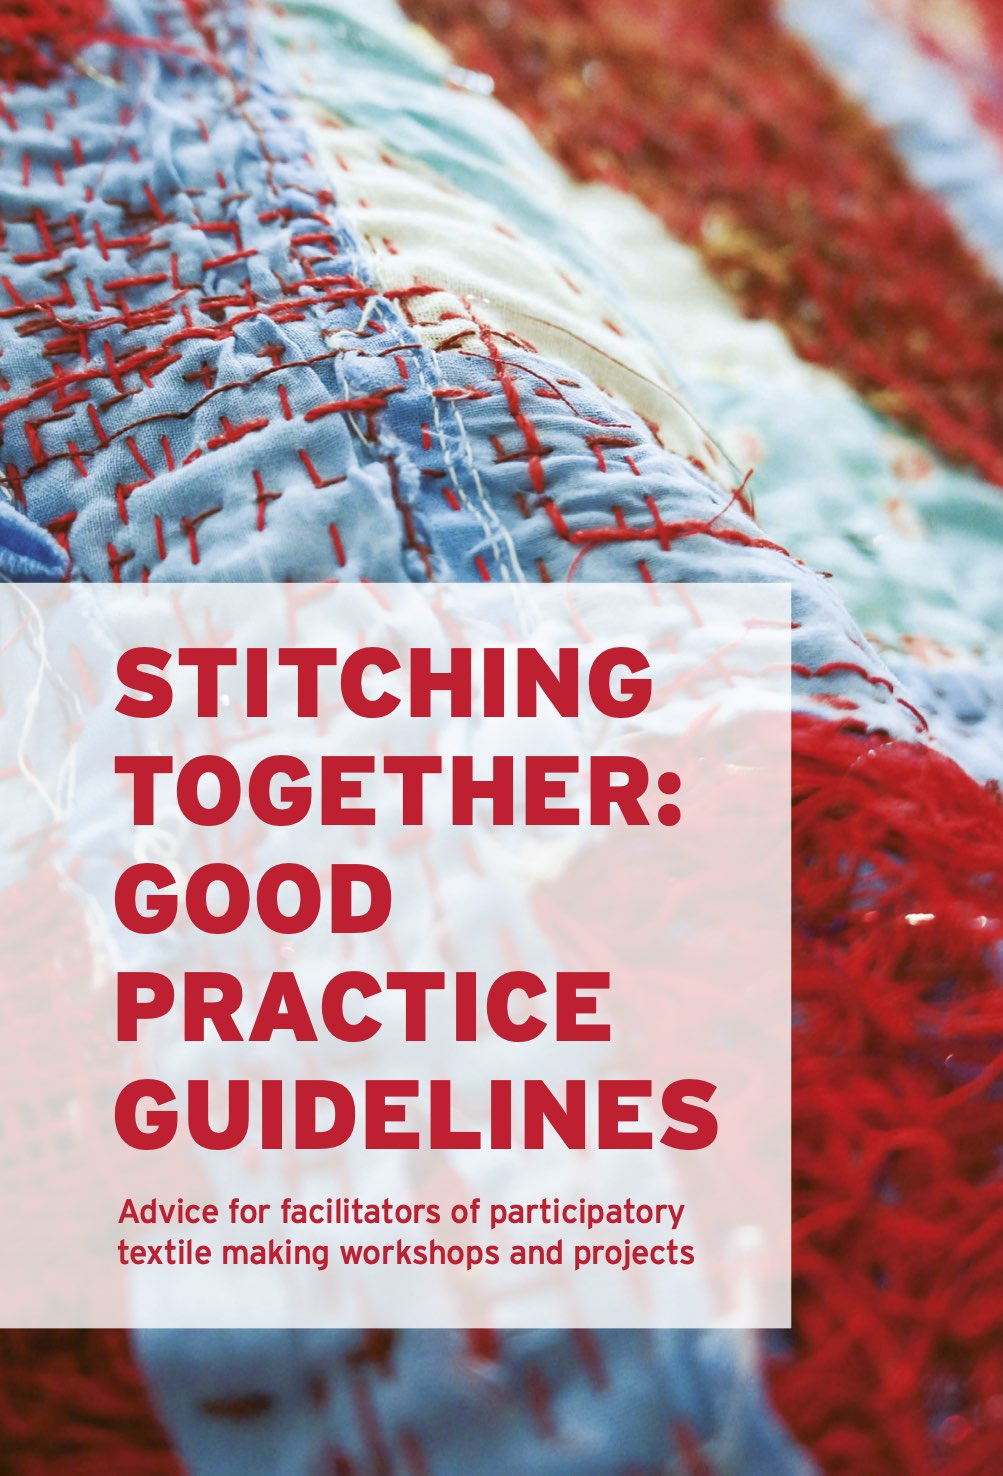 Cover of Stitching Together Good Practice Guidelines publication